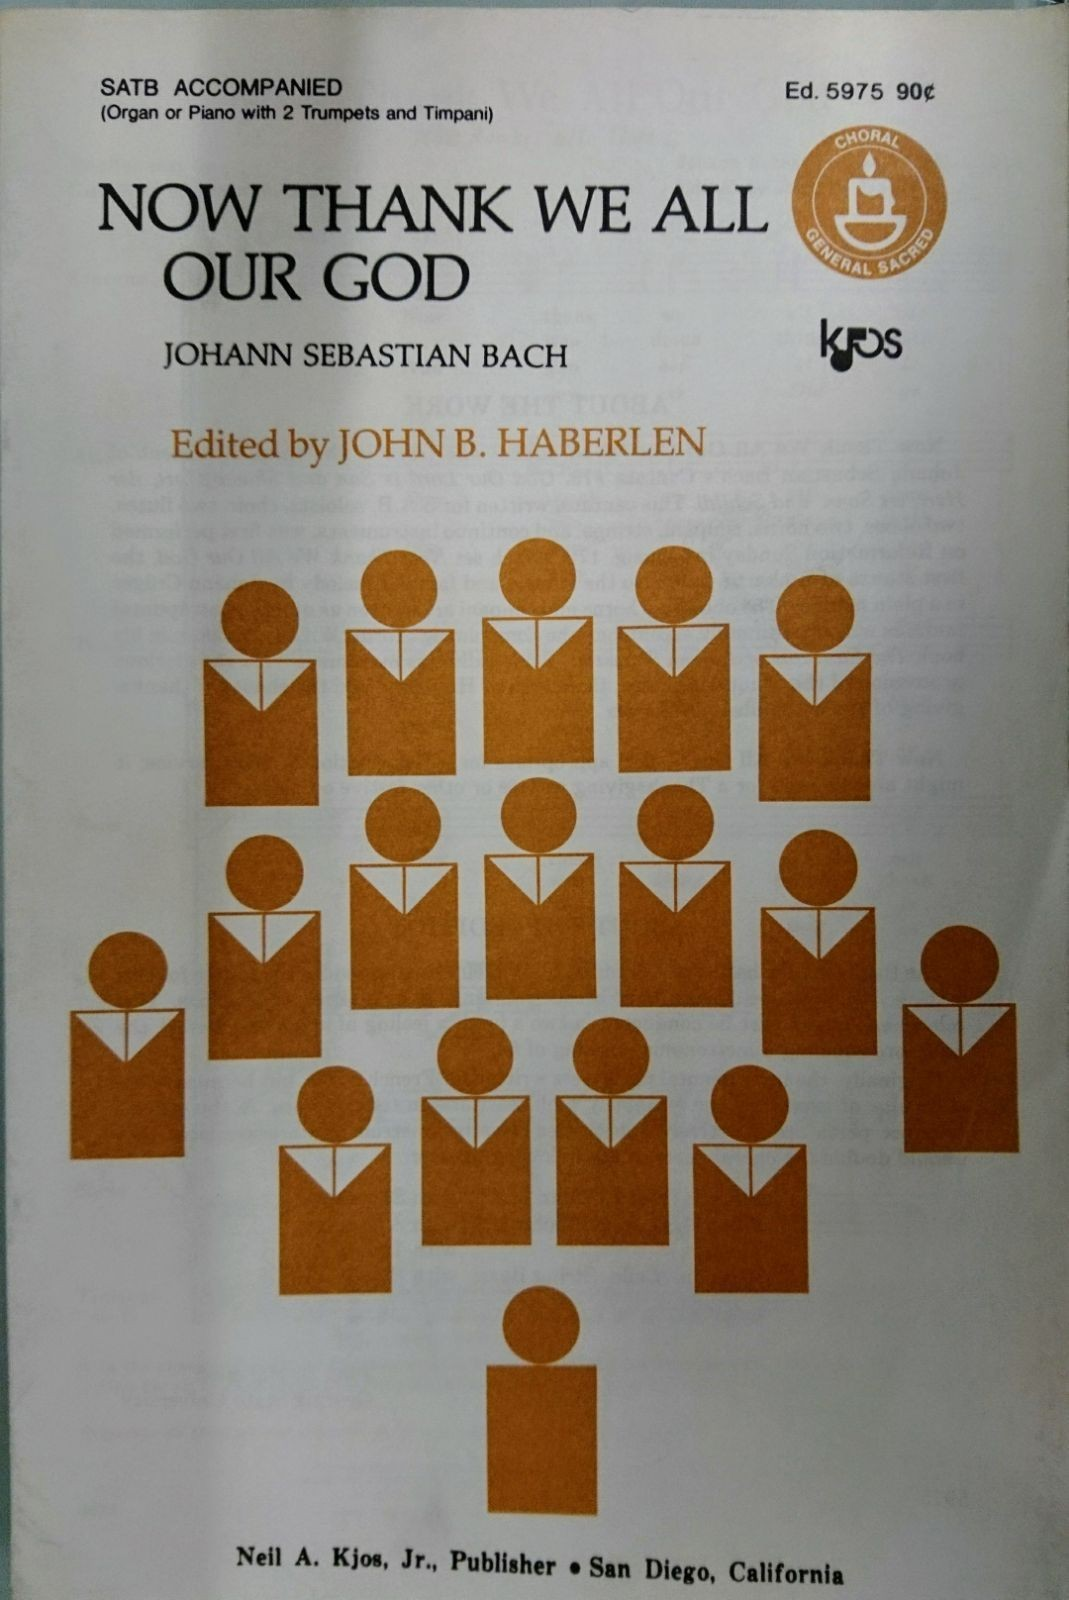 Now Thank We All Our God Bach SATB Accompanied Sheet Music S162